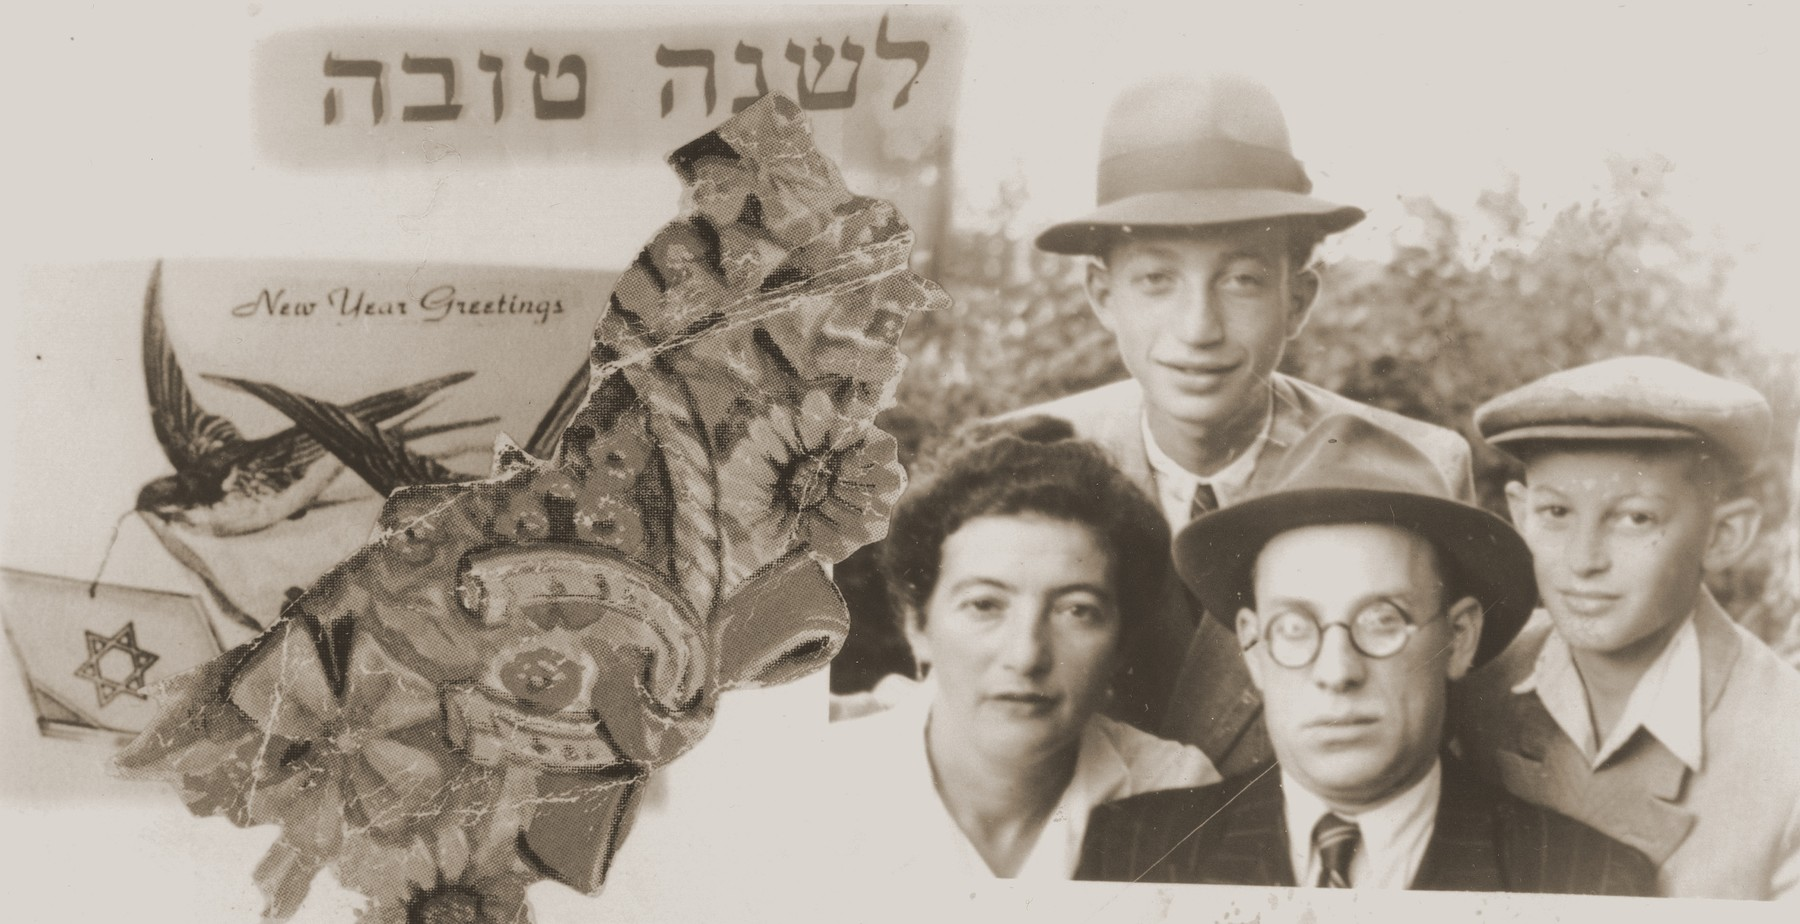 Personalized Jewish New Year's card with a portrait of the Appelbaum family in the Gabersee displaced persons camp.  Pictured are Gittel Chibowsky and Chanania Appelbaum with their two sons, Yitzhak (top) and Motel (right).